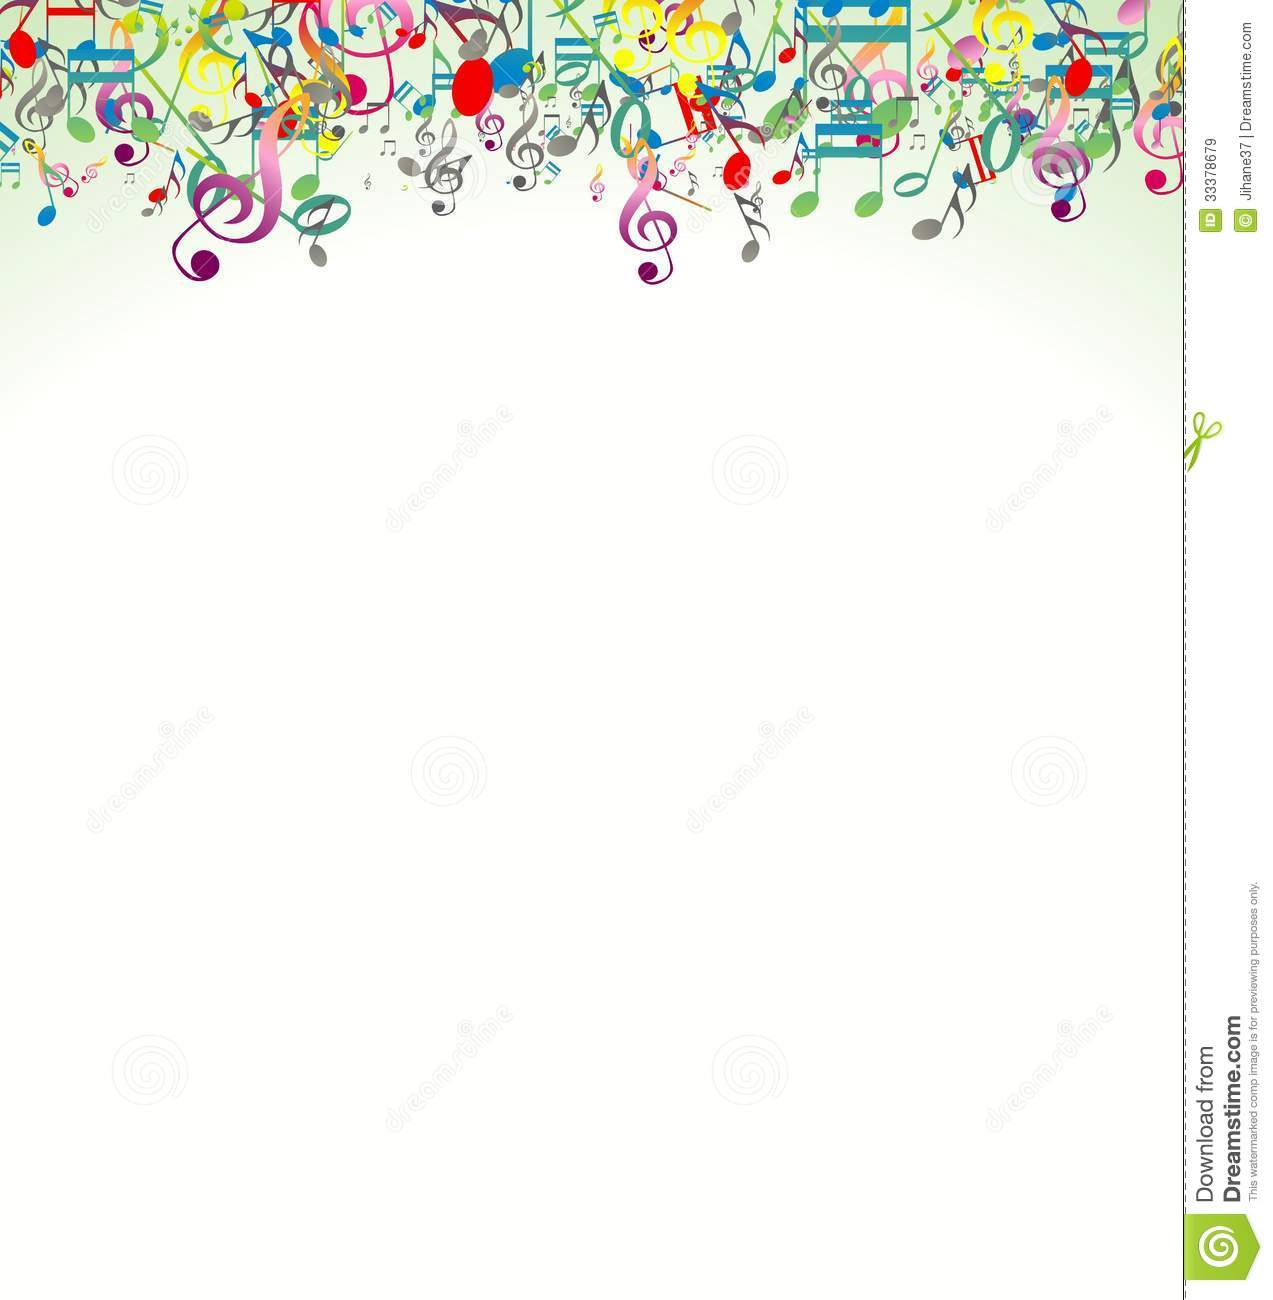 Clipart music notes music notes background clipart and free music - Beauty Abstract Background With Colorful Music Notes Royalty Free Stock Images